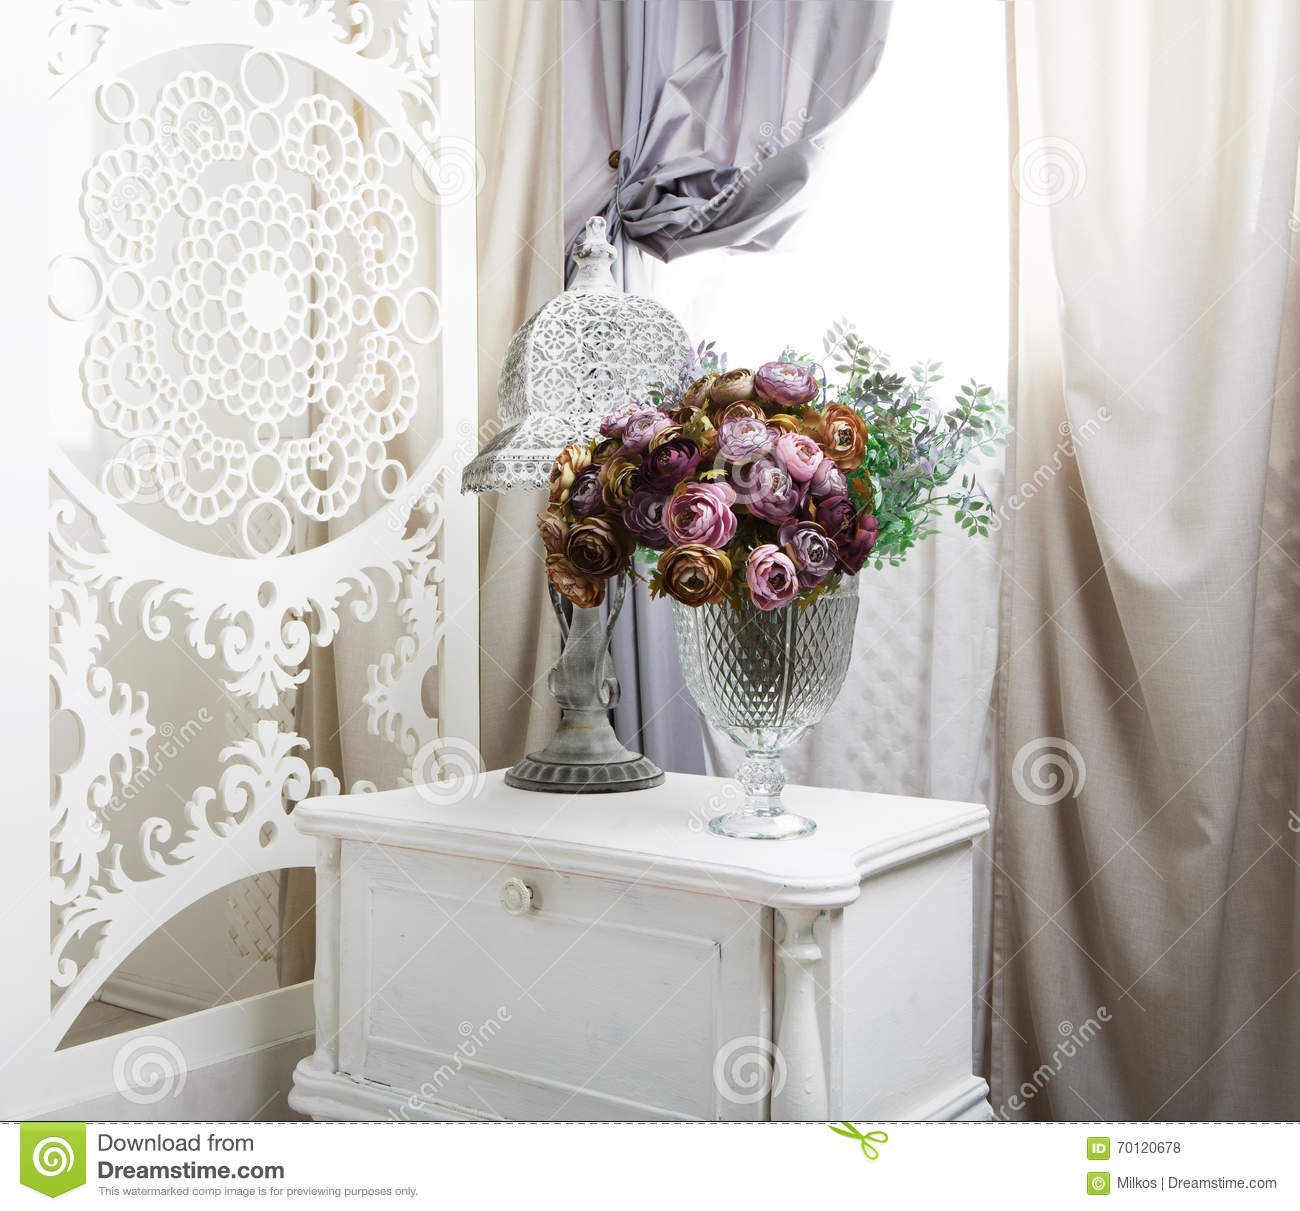 shabby chic white room interior wedding decor stock photo. Black Bedroom Furniture Sets. Home Design Ideas